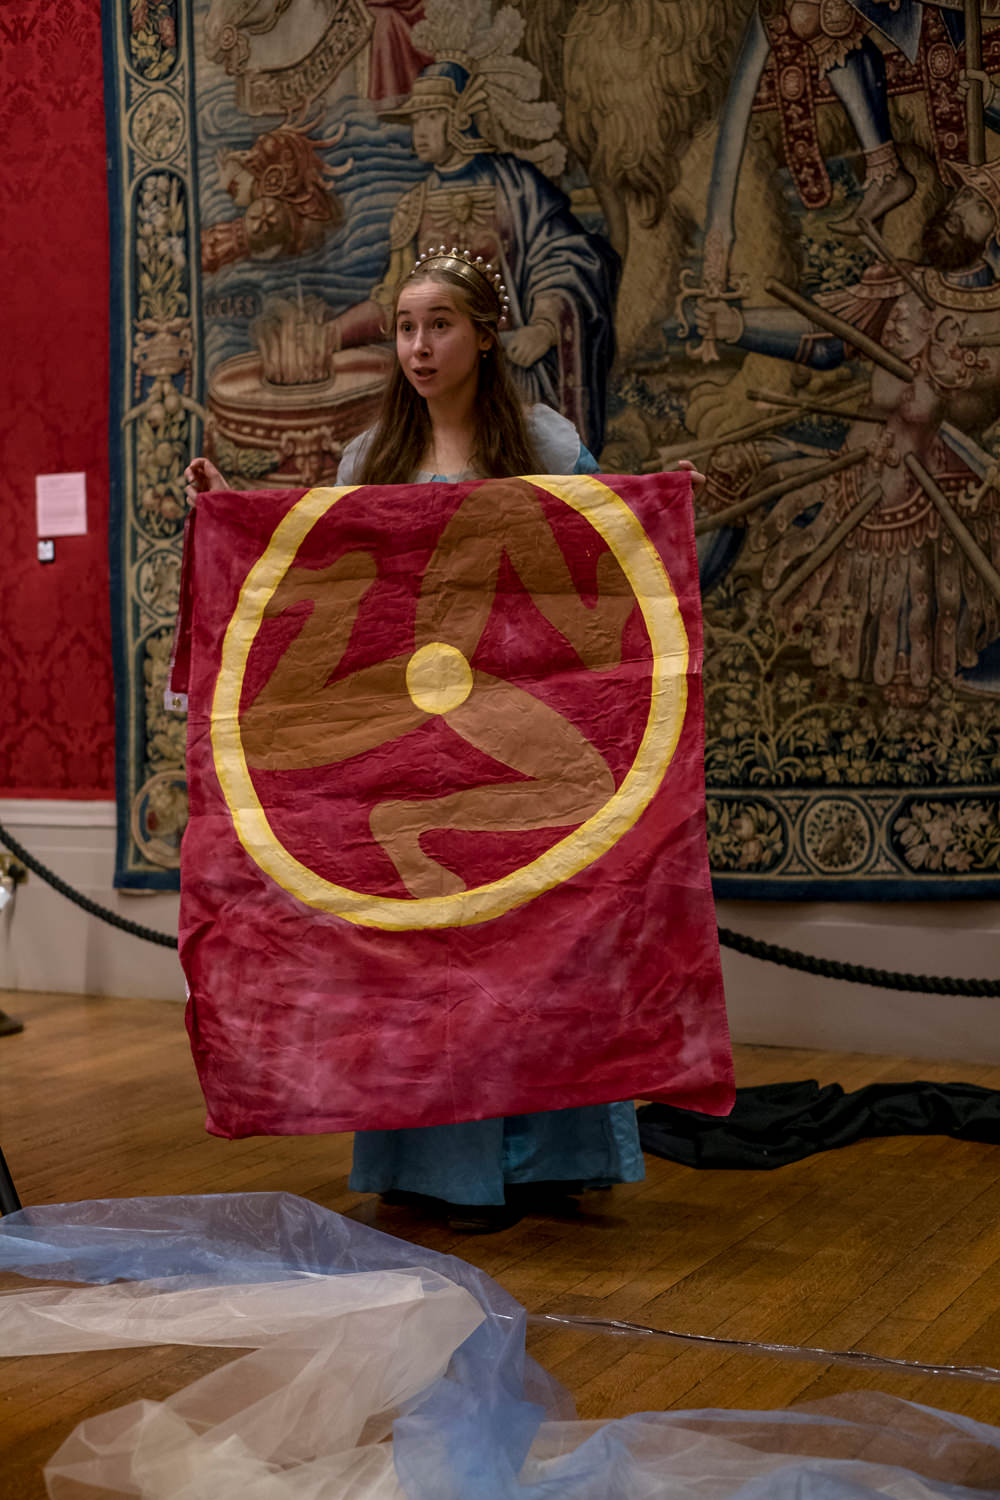 The actress holding a flag from the Isle of Man